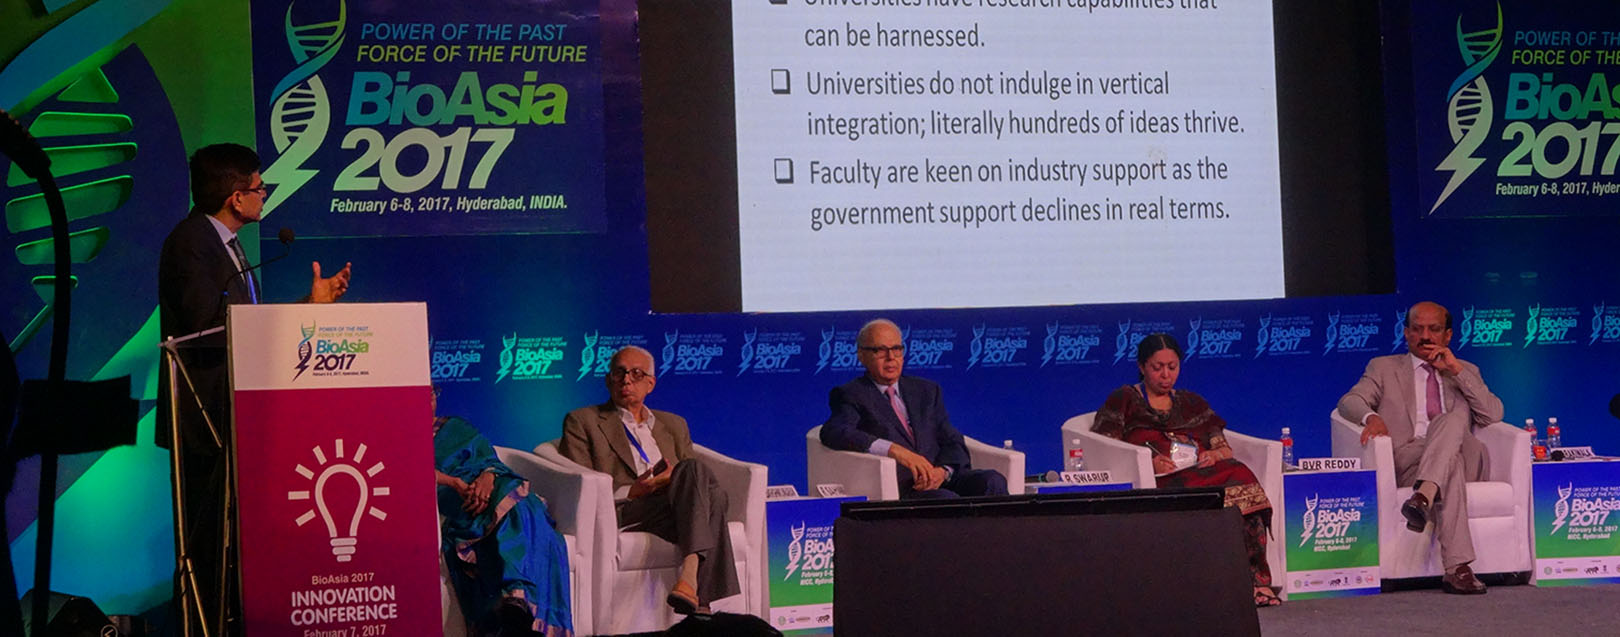 Bio Asia 2017: Power of the past, force of the future